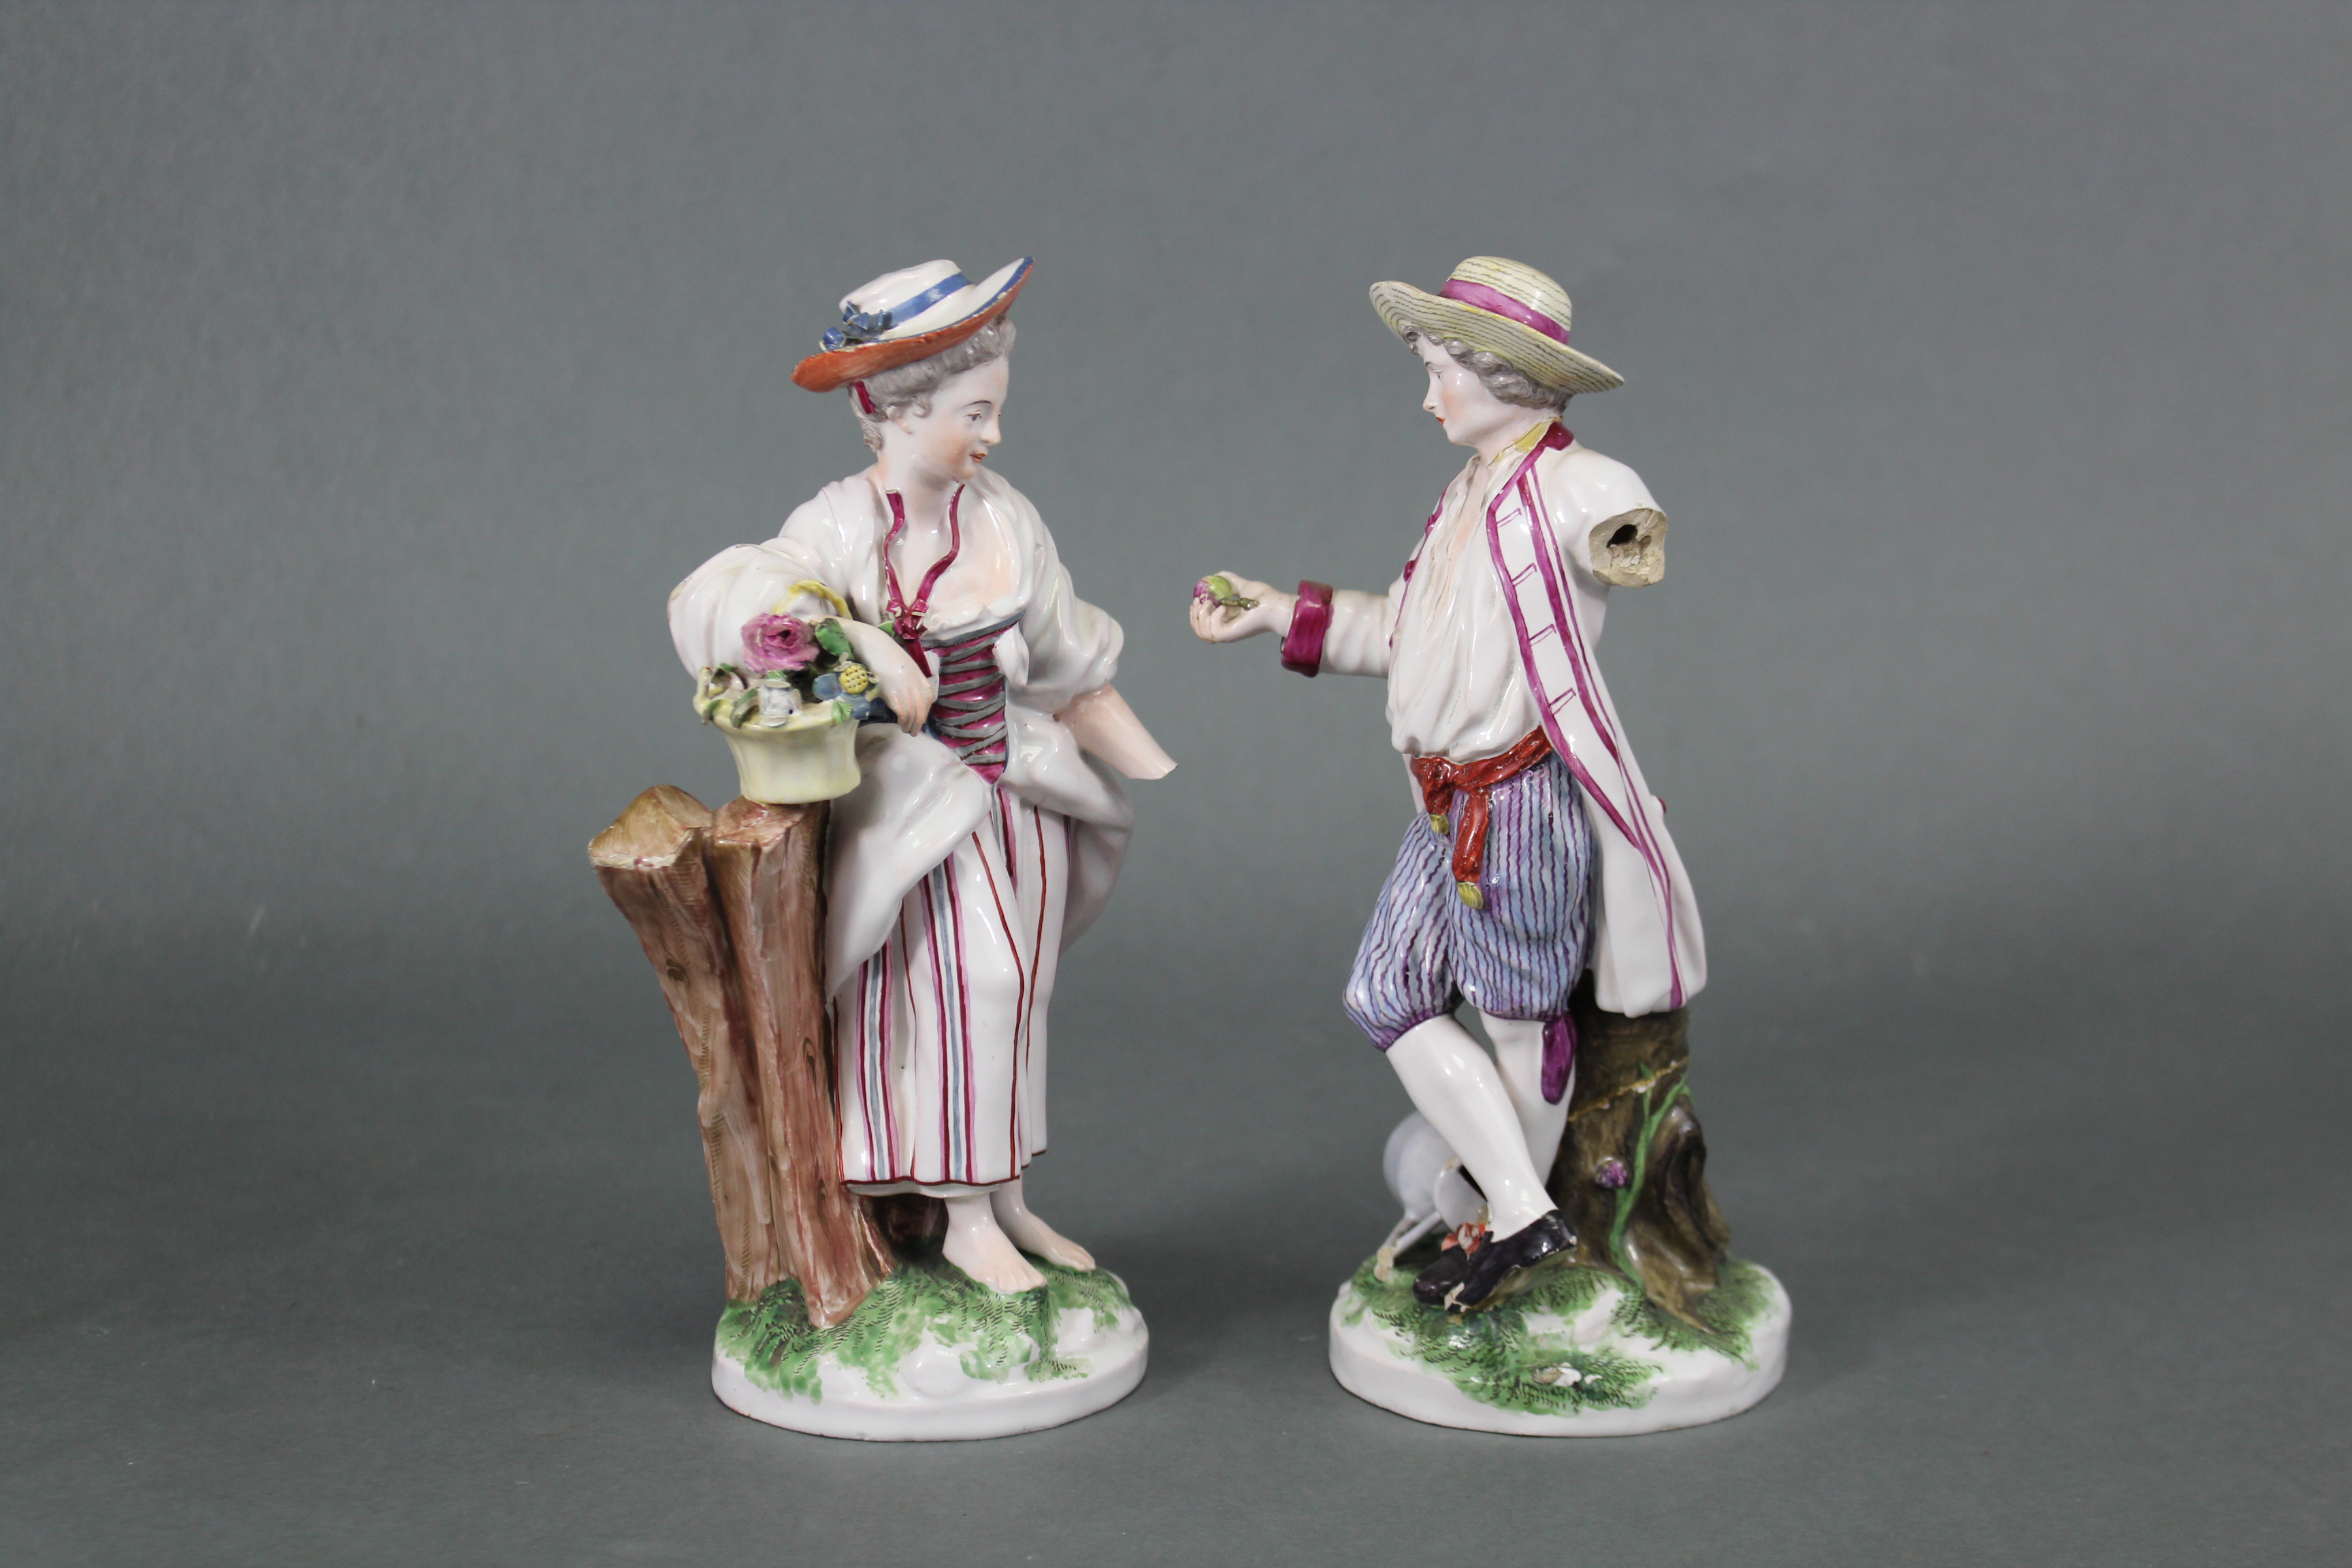 Lot 188 - A pair of late 18th century Niderviller faience male & female standing figures in rustic dress, he